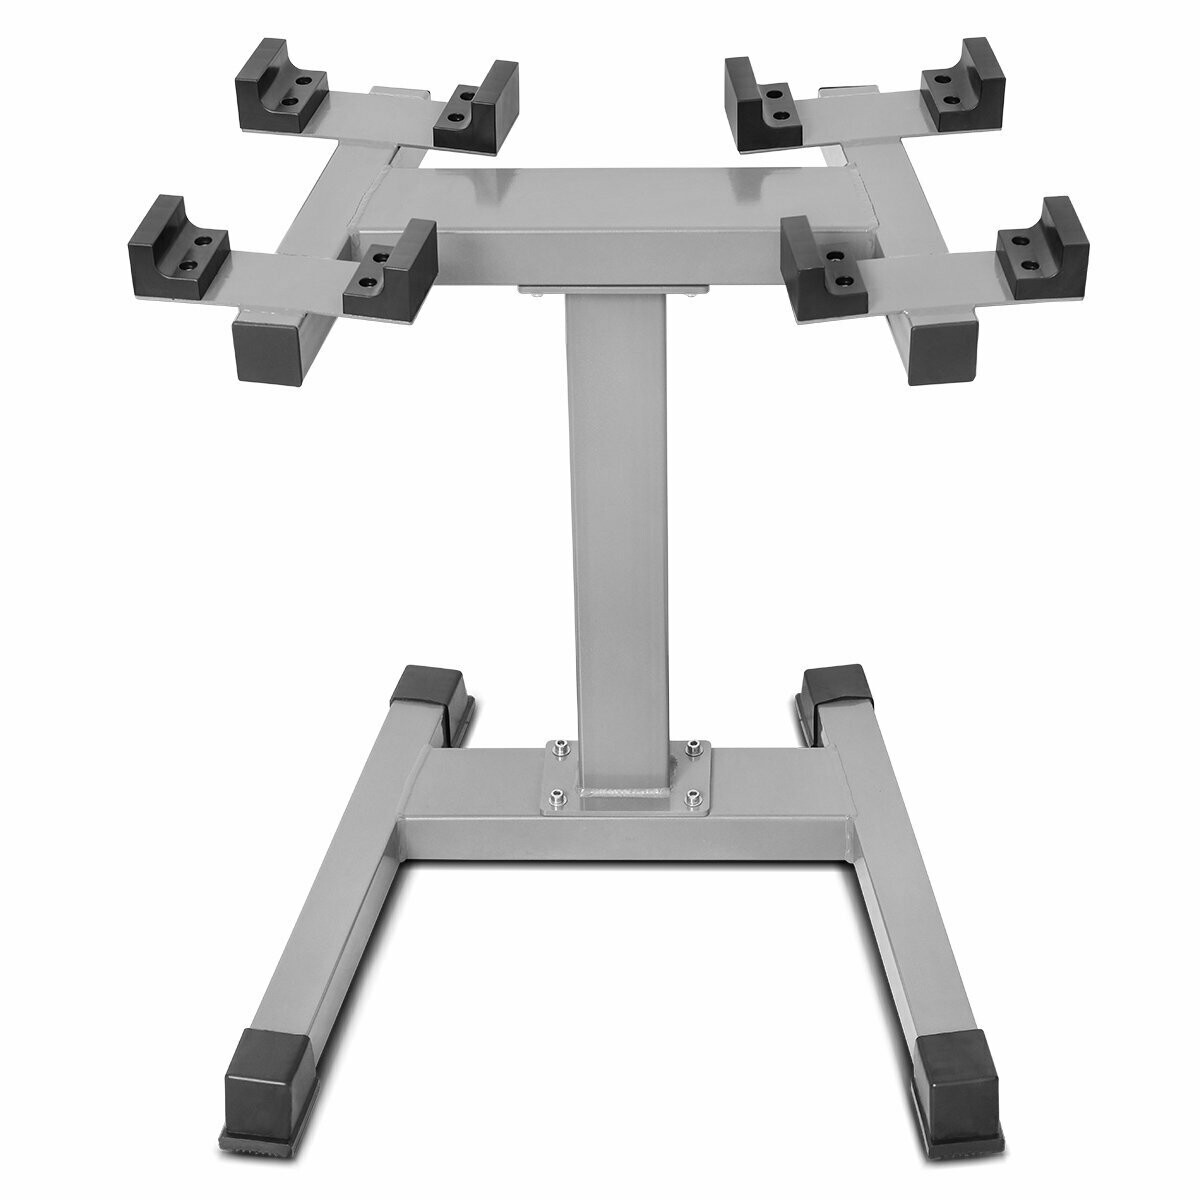 ARMORBELL ADJUSTABLE DUMBELL STAND